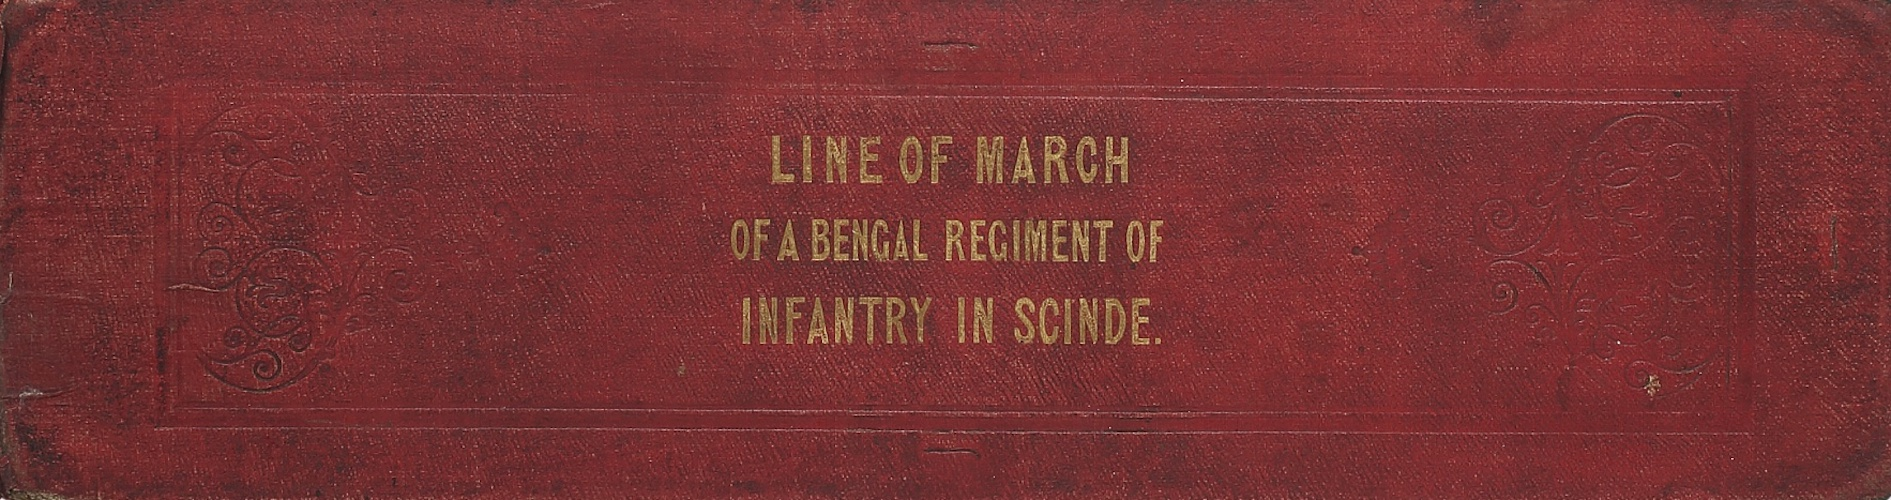 Line of March of a Bengal Regiment of Infantry